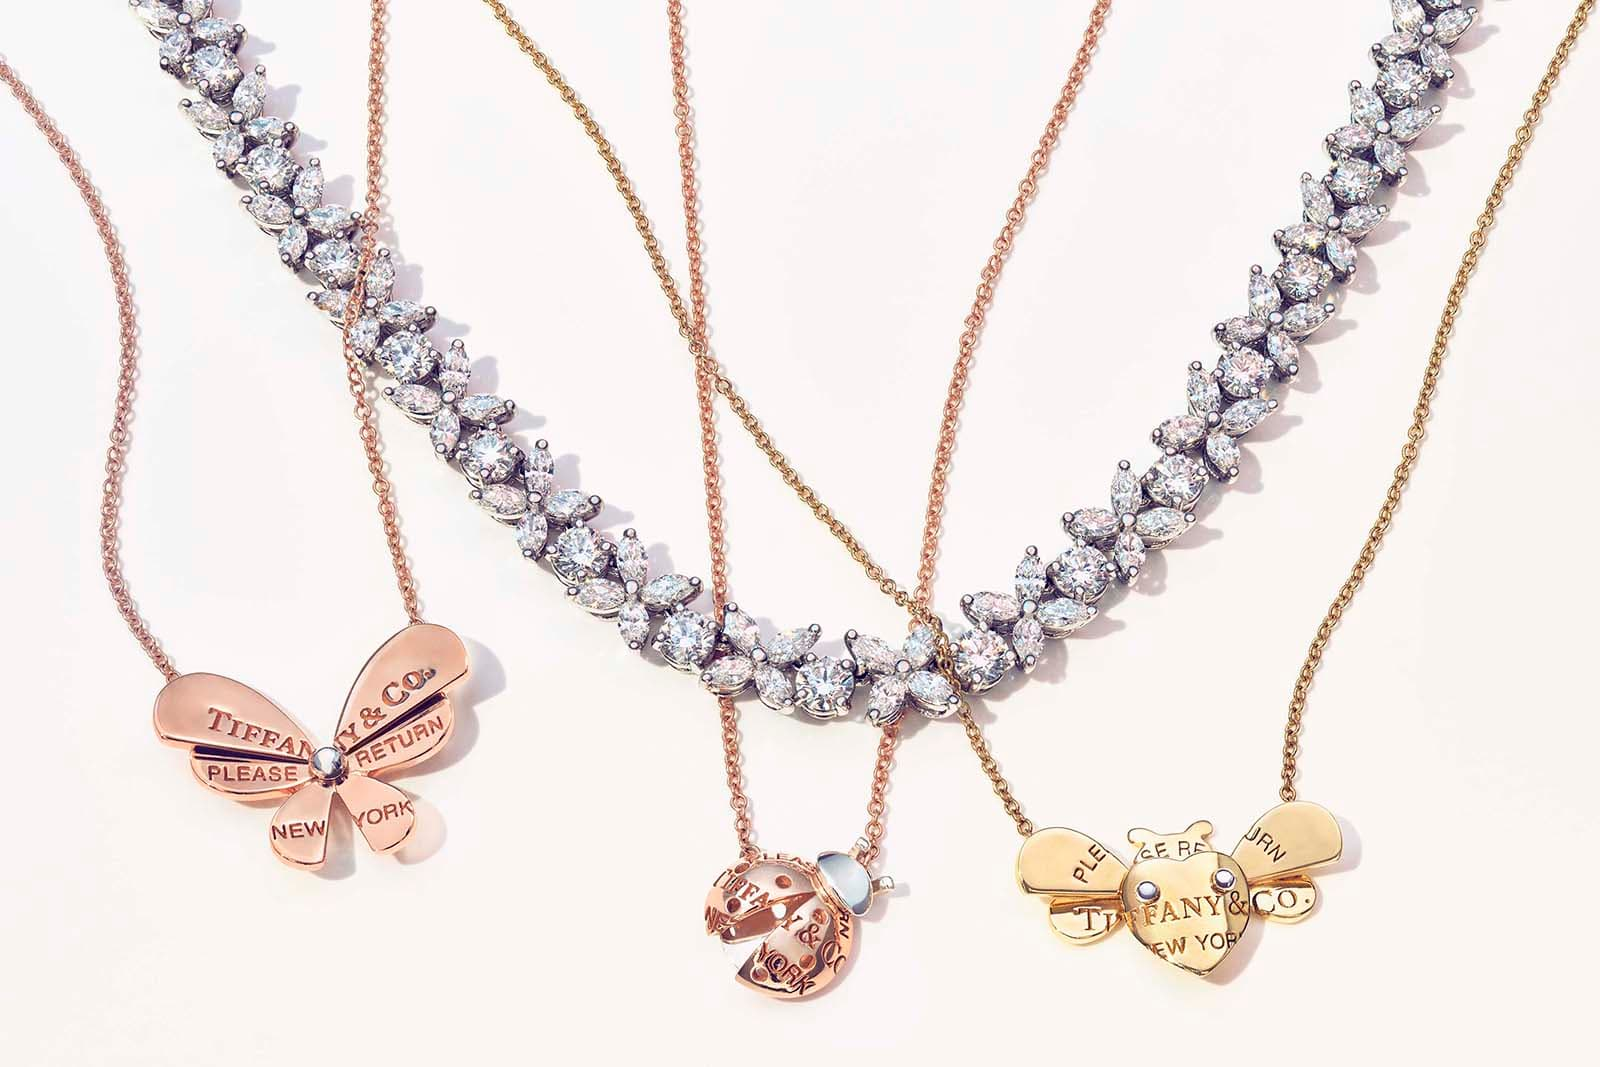 Tiffany&Co. 'Return to Tiffany Love Bugs' collection necklaces with diamond necklace in yellow, rose and white gold and silver